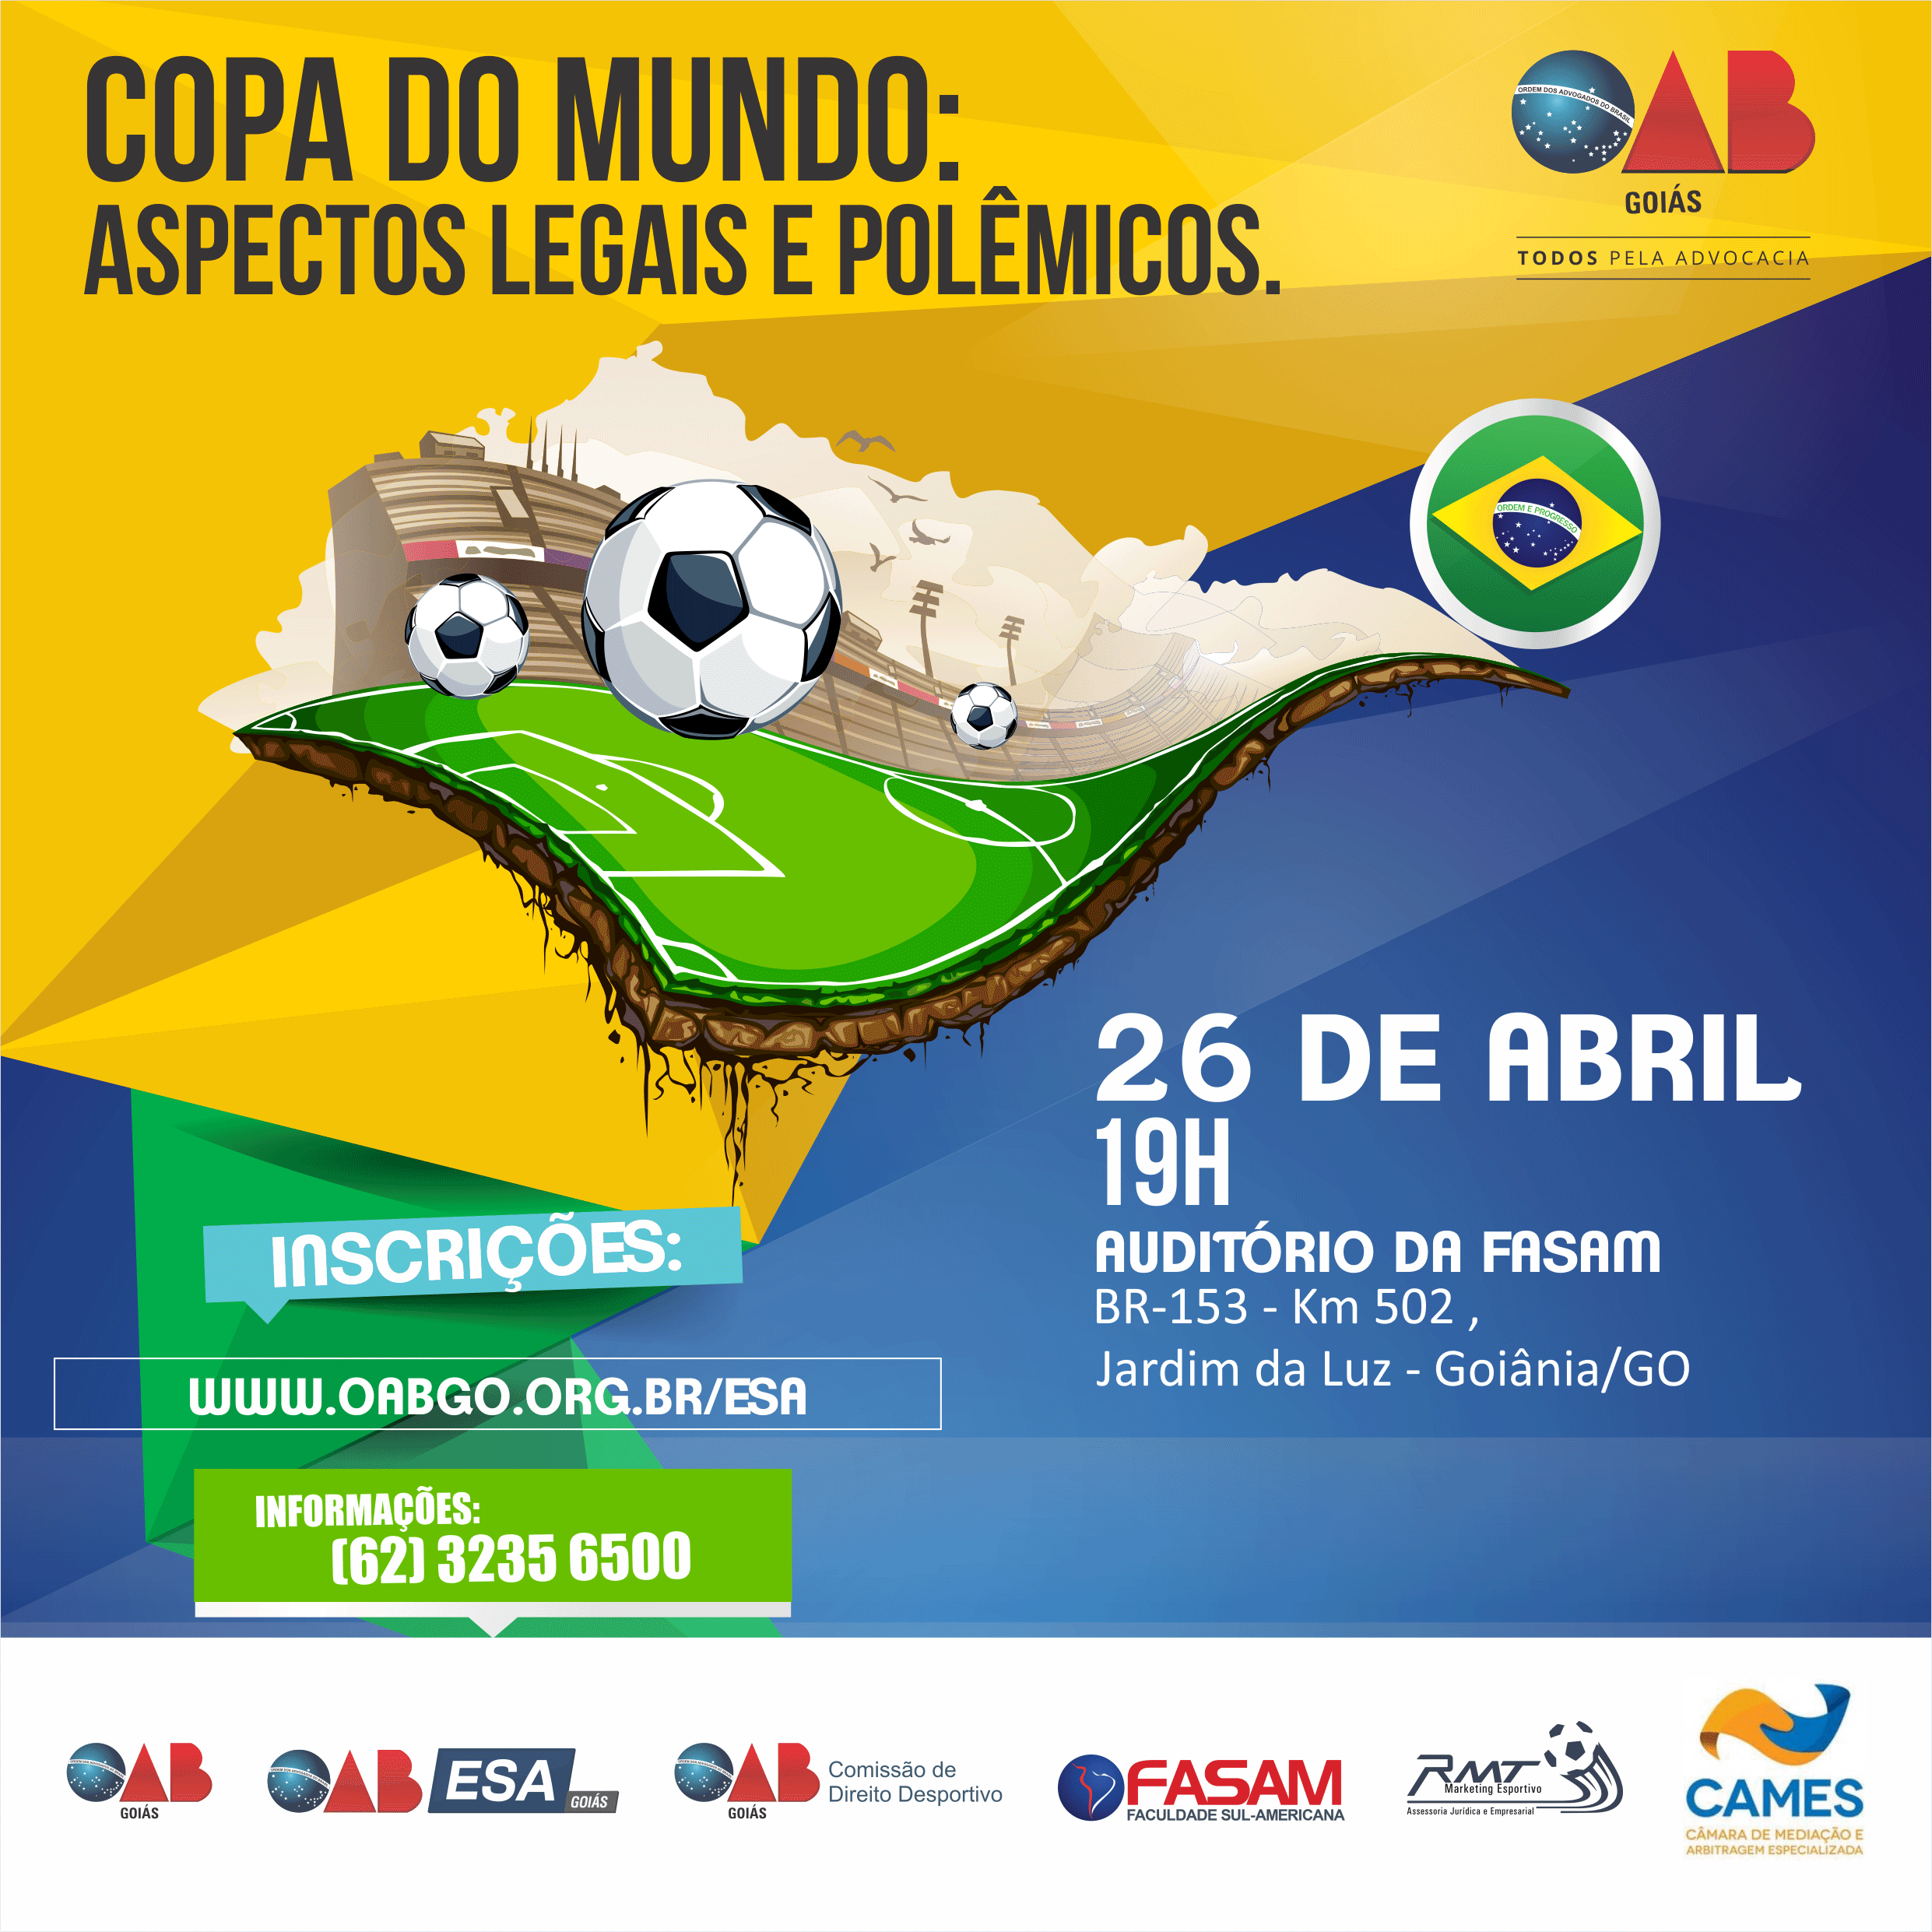 26.04 - Copa do Mundo - Aspectos Legais e Polêmicos